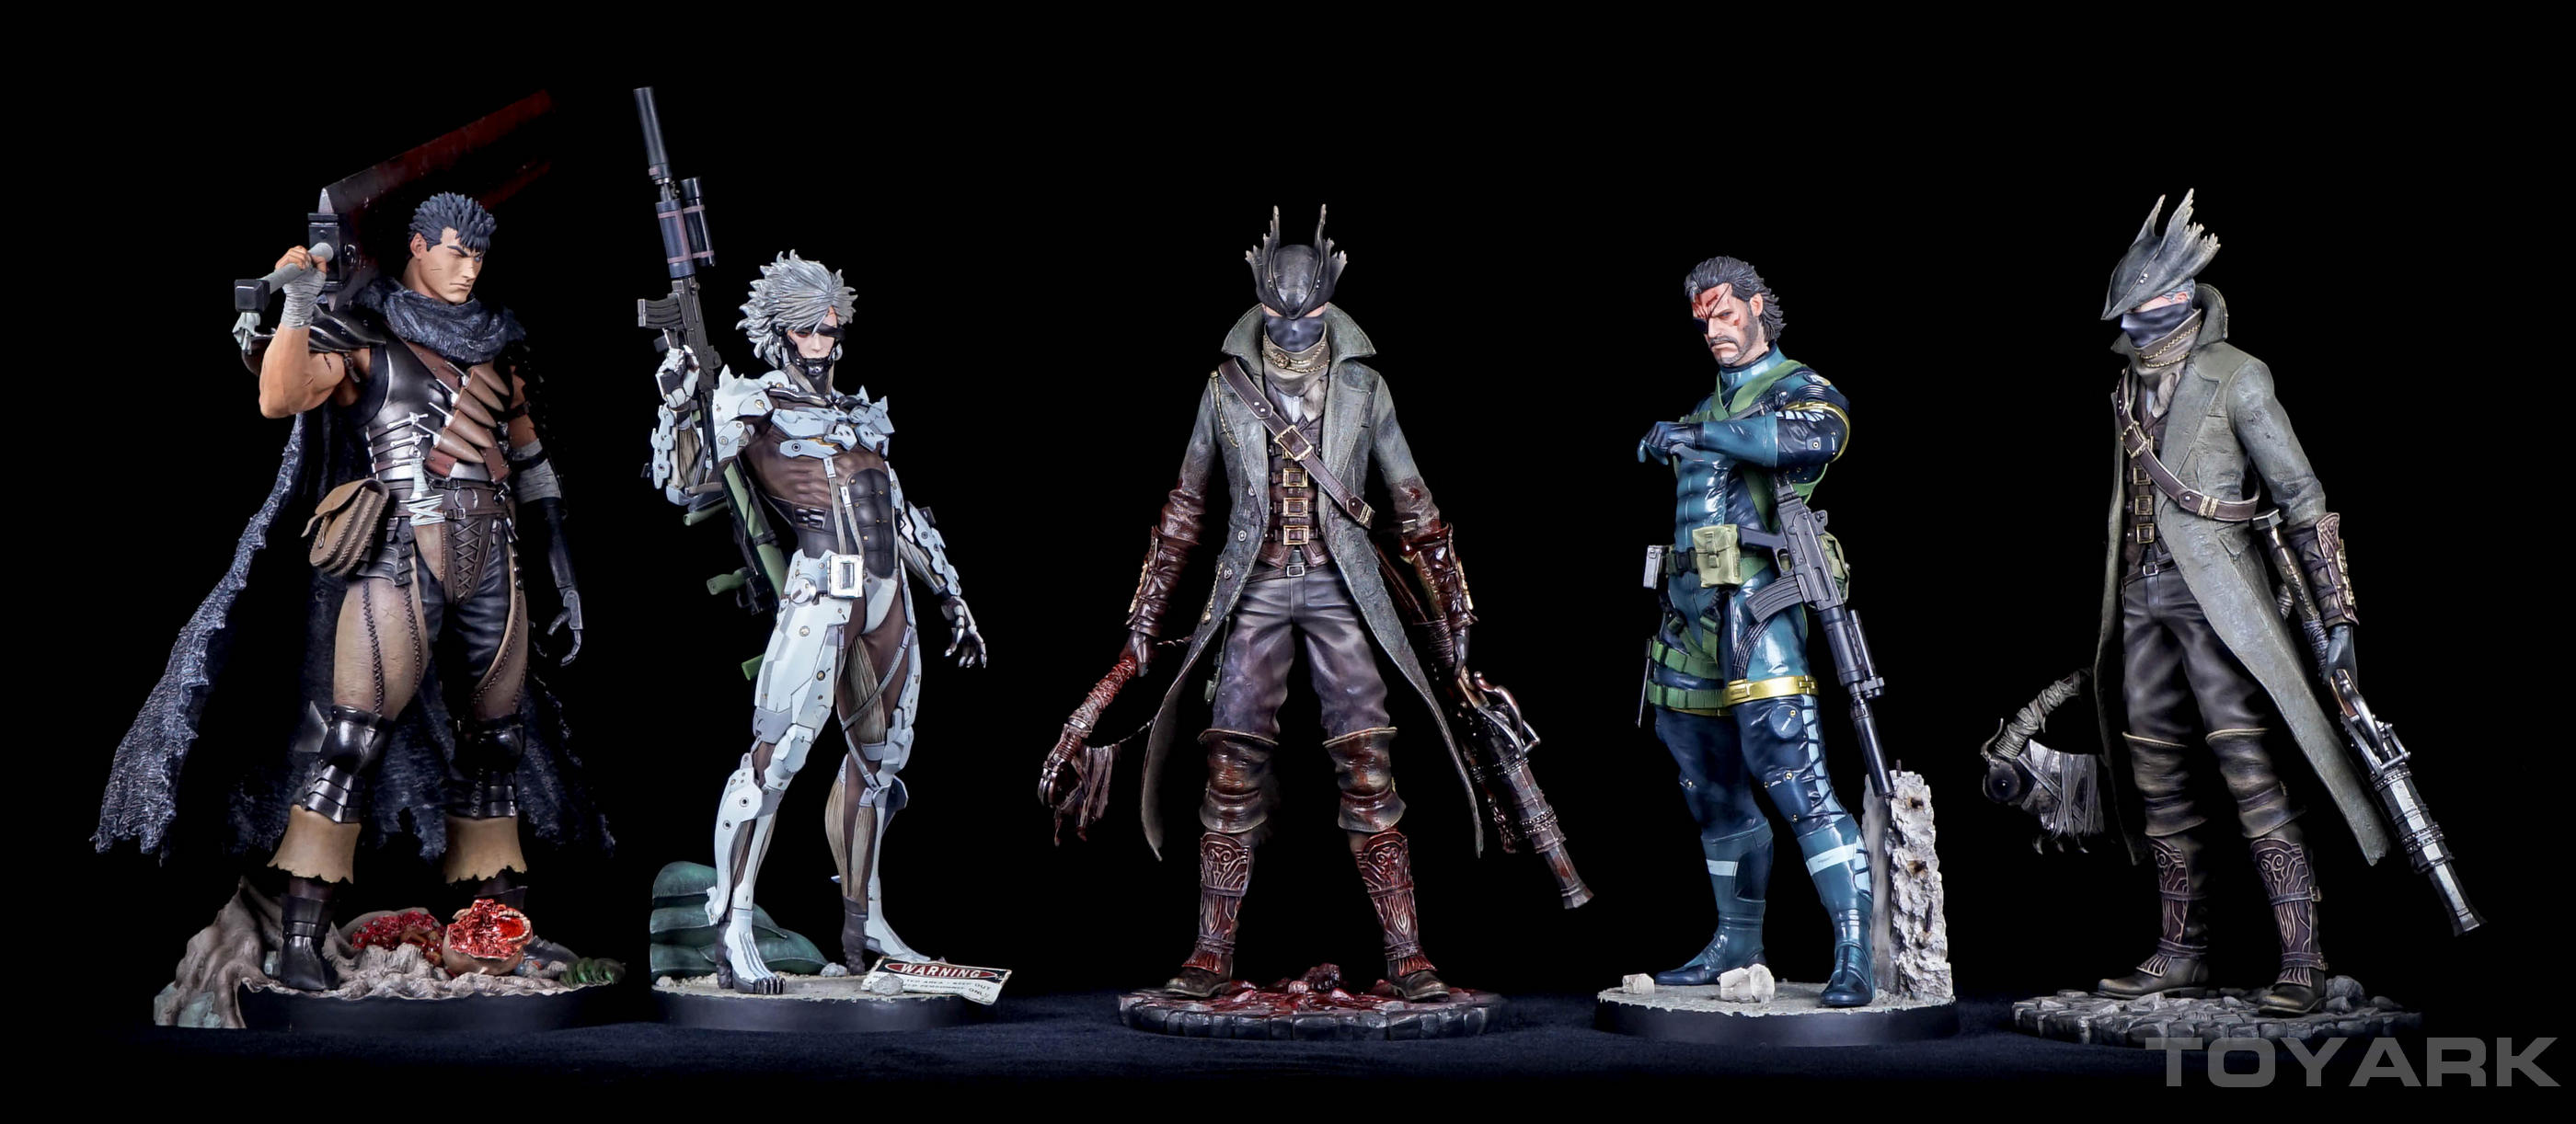 http://news.toyark.com/wp-content/uploads/sites/4/2016/02/Bloodborne-Hunter-PoB-Statue-046.jpg